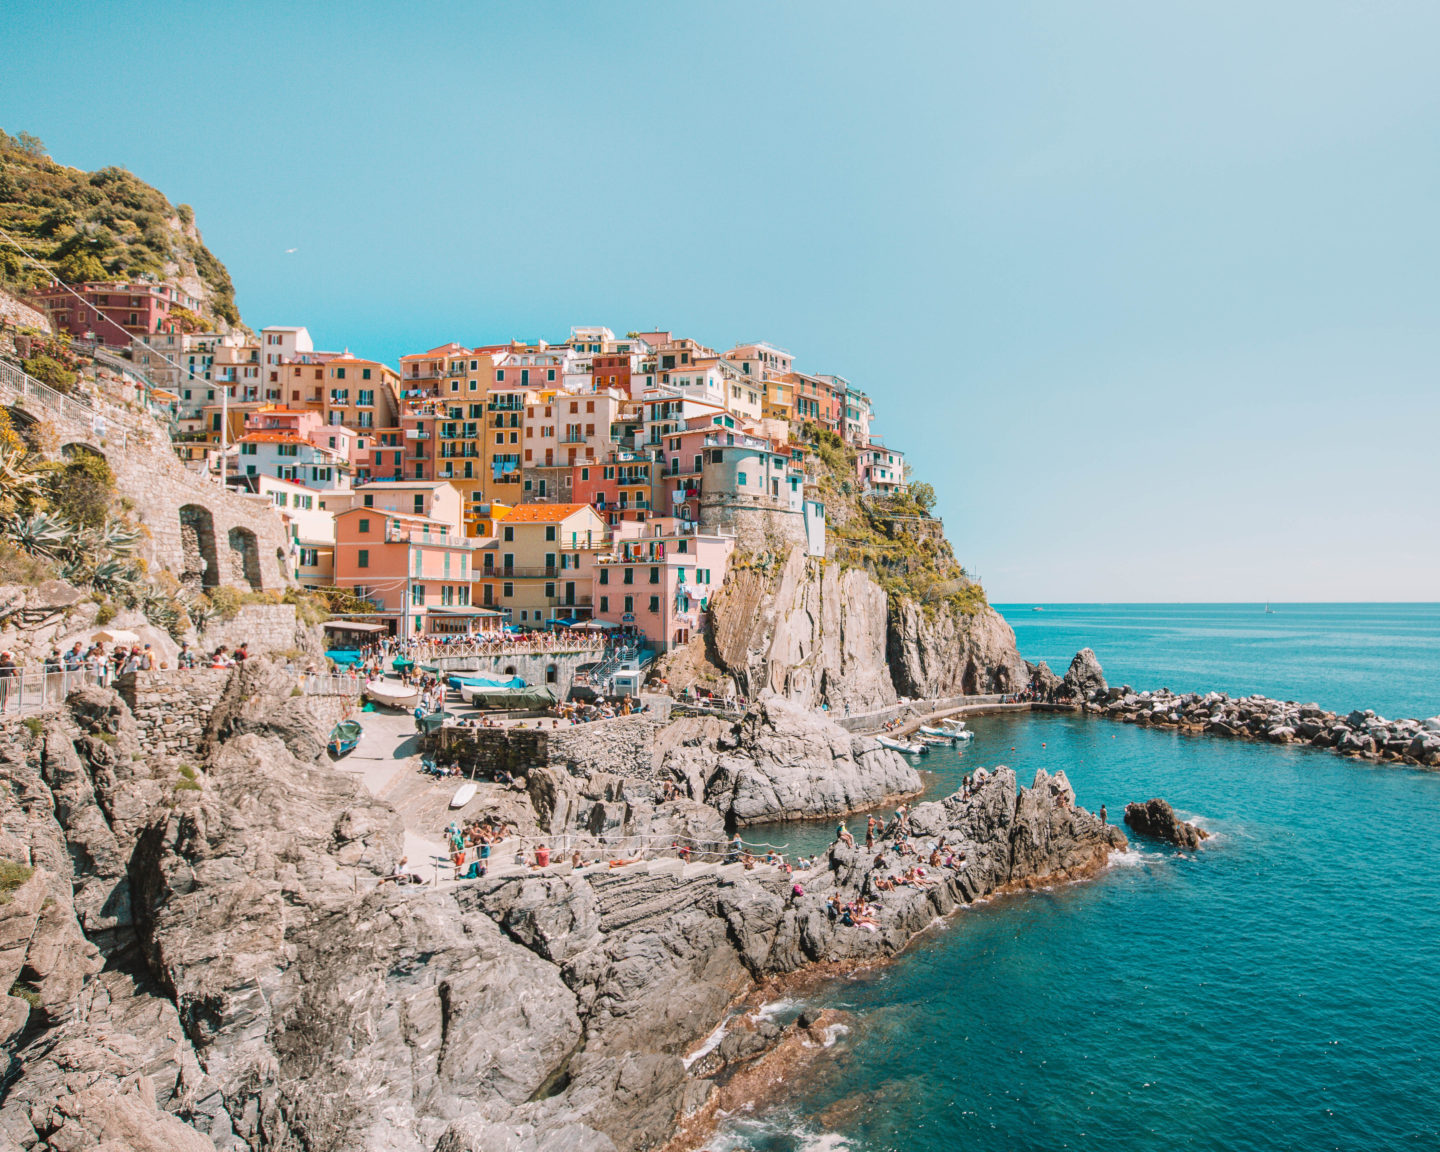 So, you're planning your trip to Cinque Terre. Look no further to find everything you need to know about where to stay in Cinque Terre!